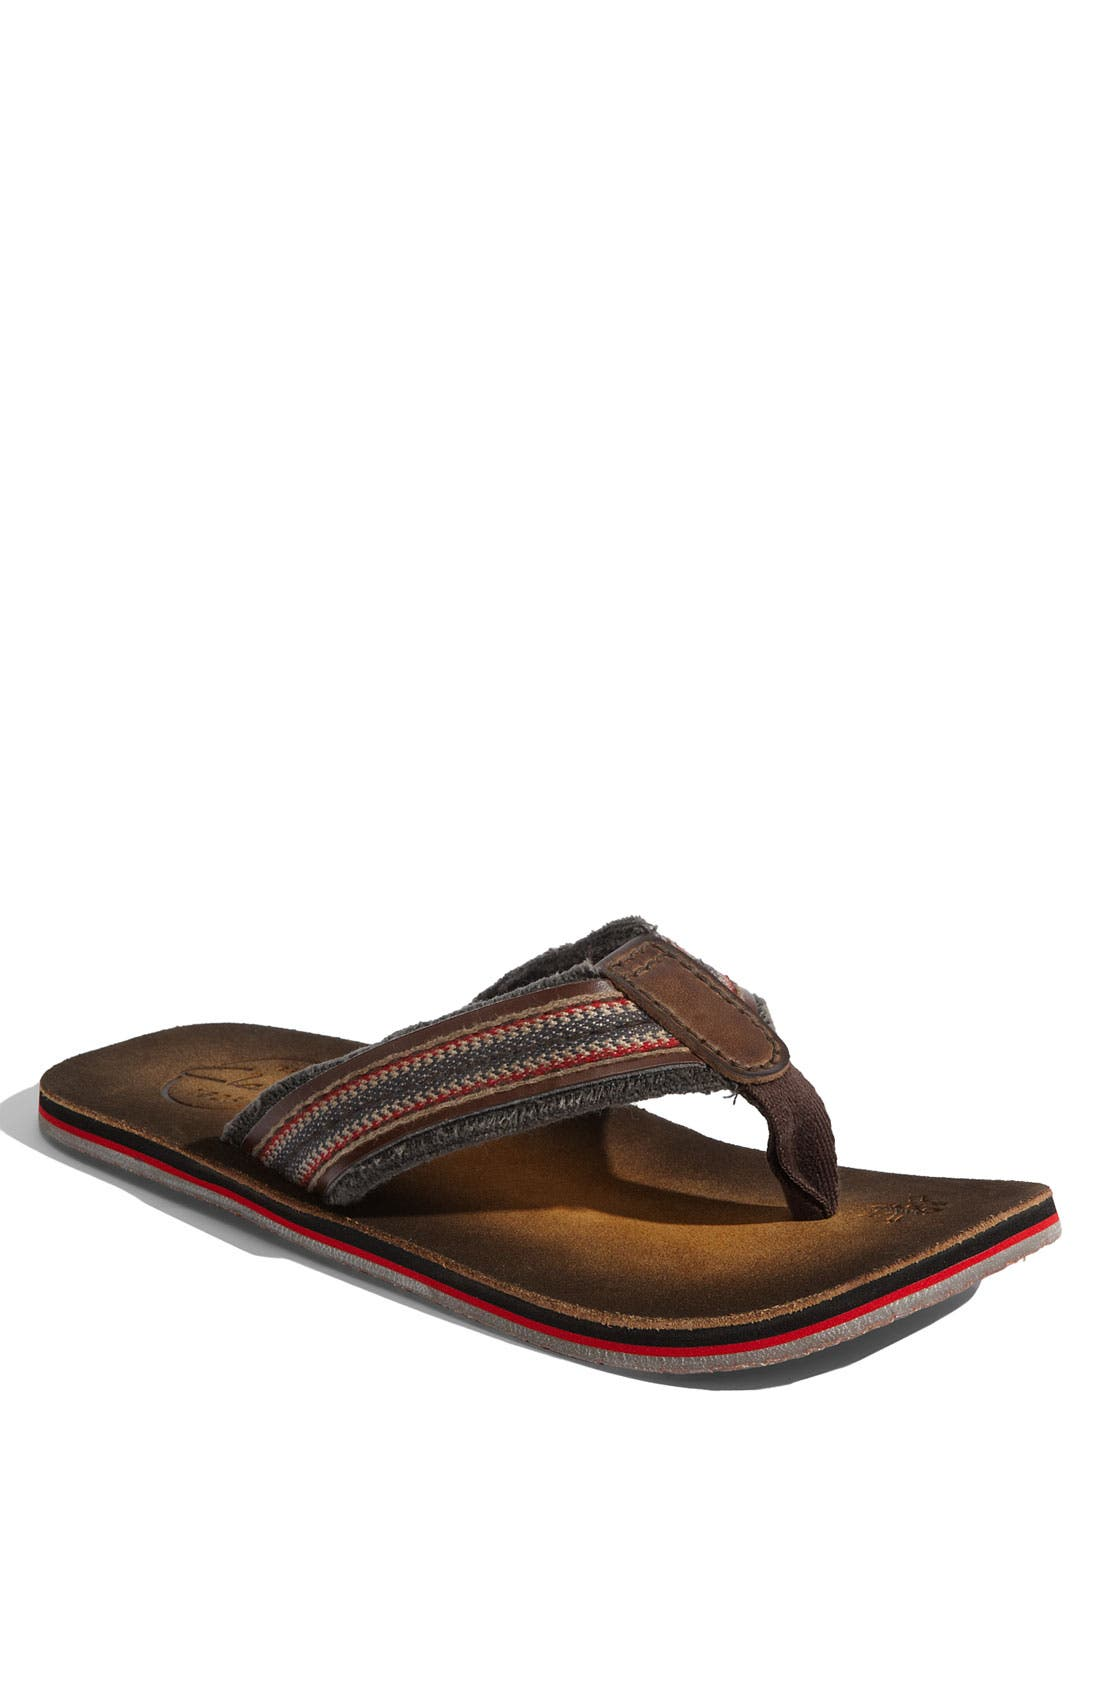 Alternate Image 1 Selected - Clarks® 'Cayo' Flip Flop